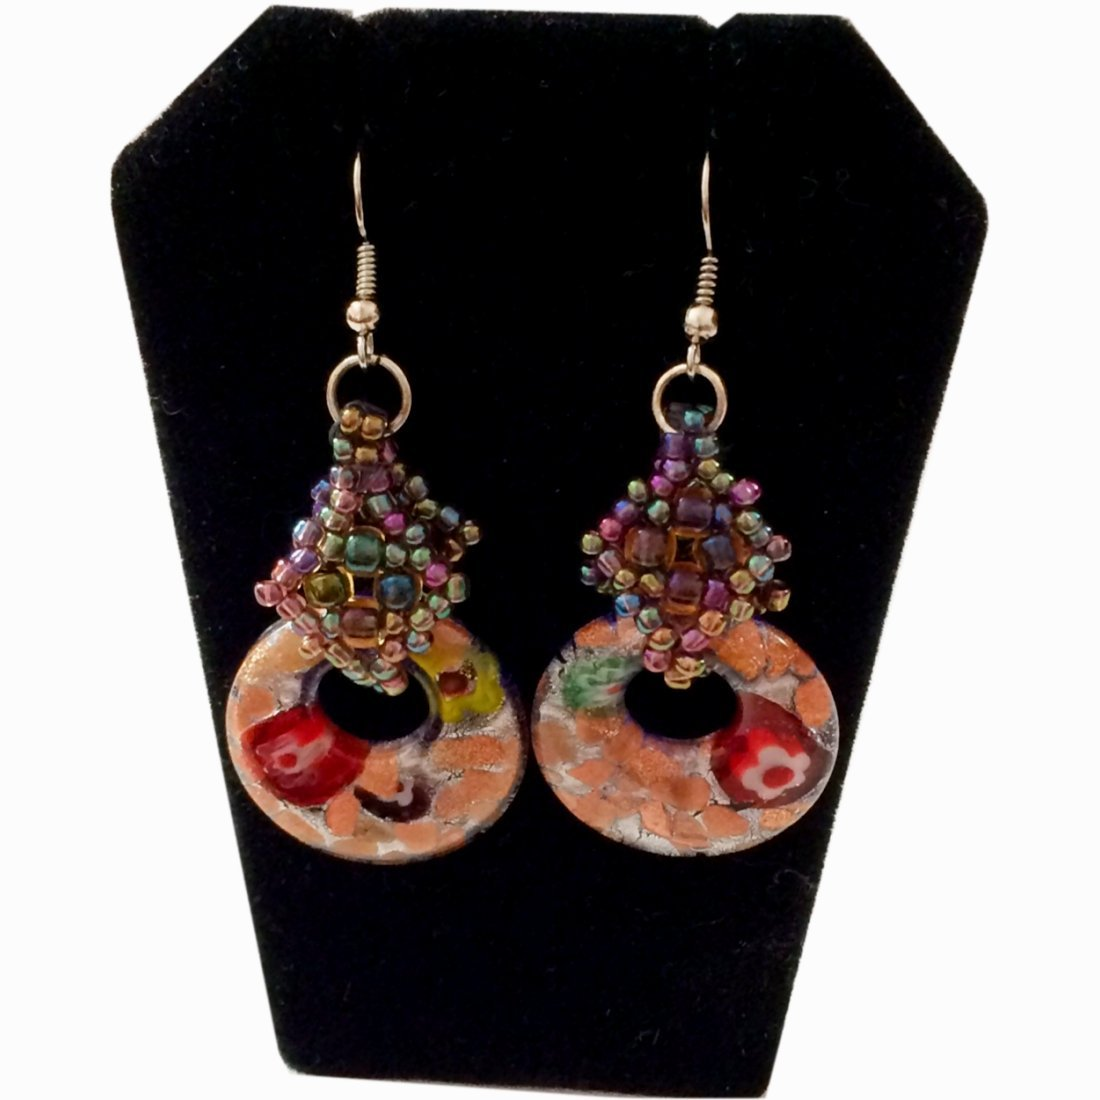 Handmade earrings. Millefiori Glass earrings with hand made beaded bail. Gorgeous glass work, Millefiori Glass EARRINGS with hand made